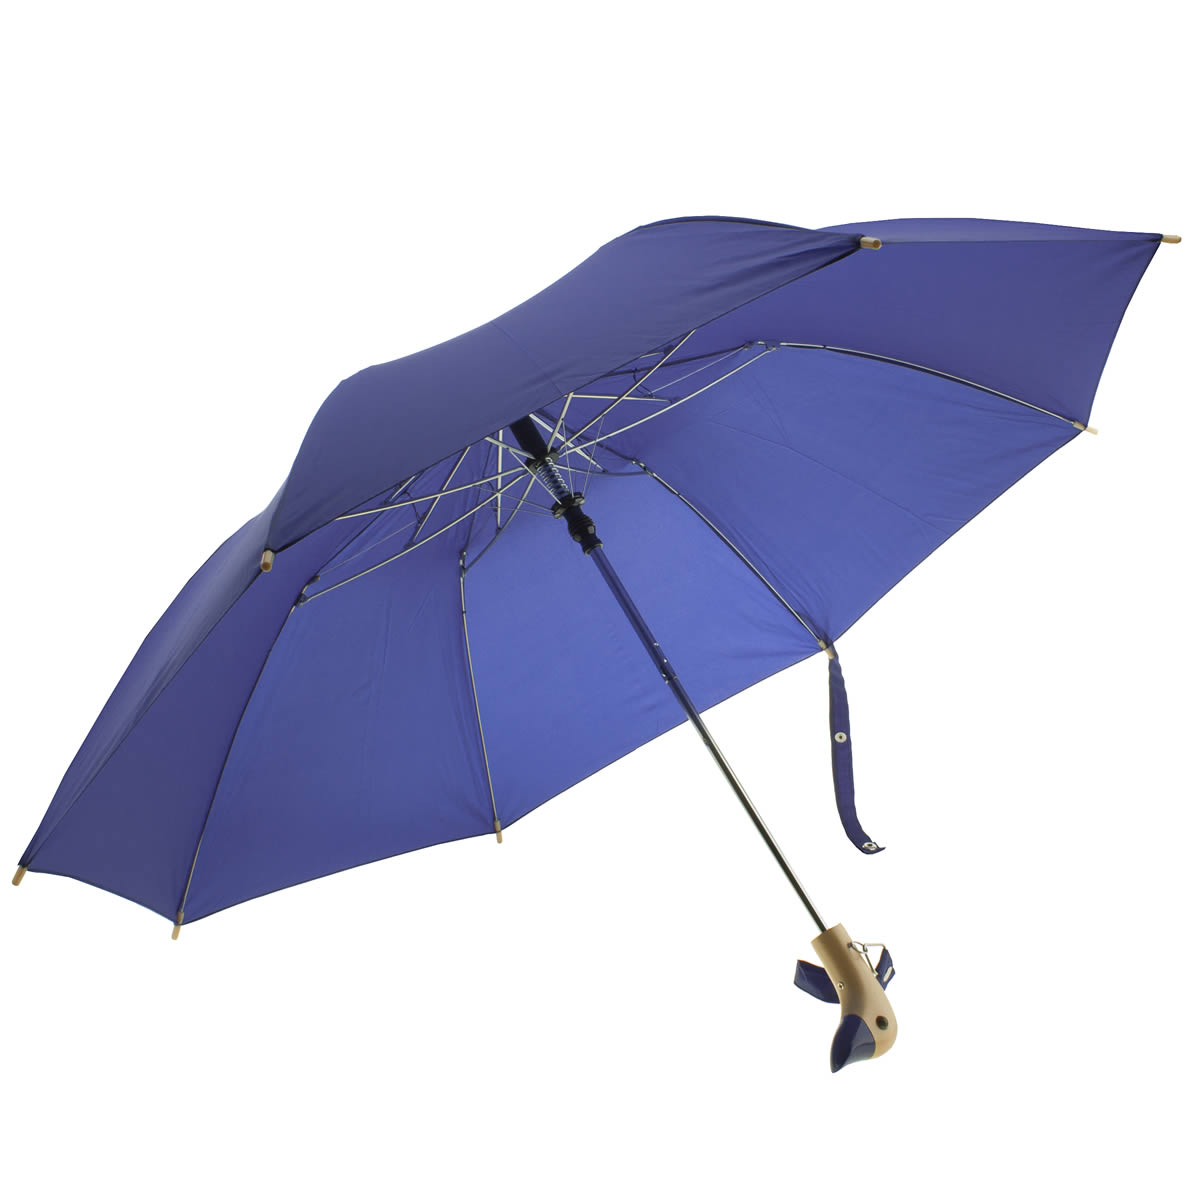 original duckhead Original Duckhead Navy Umbrella Accessory